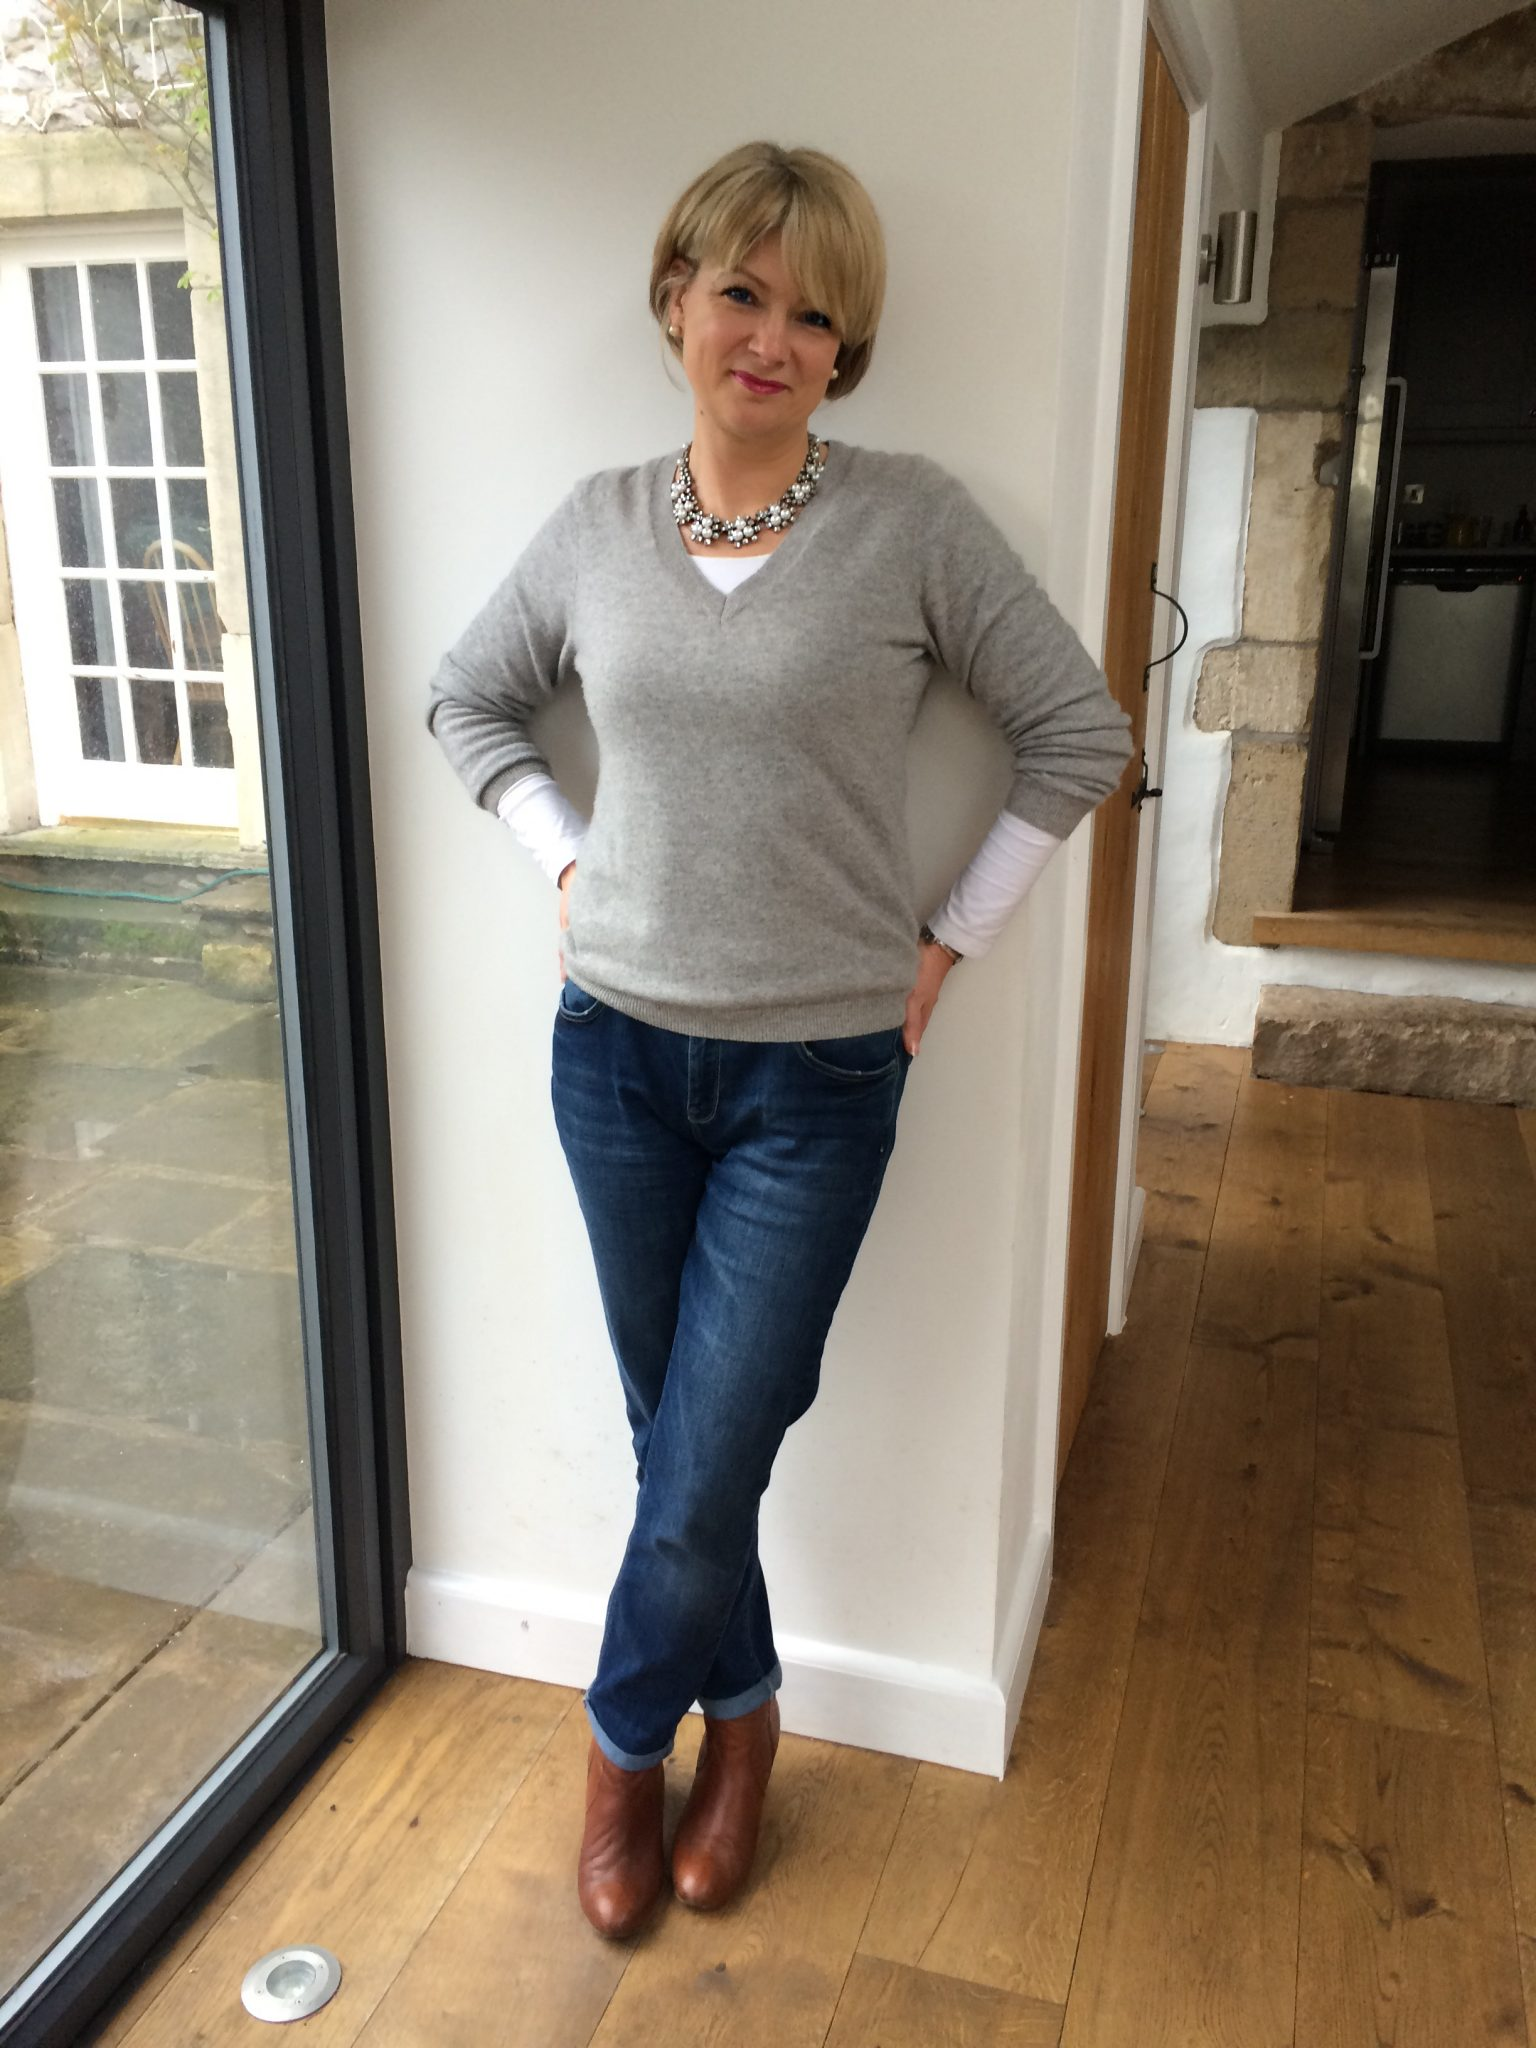 Easter Week Chic - Midlife Chic